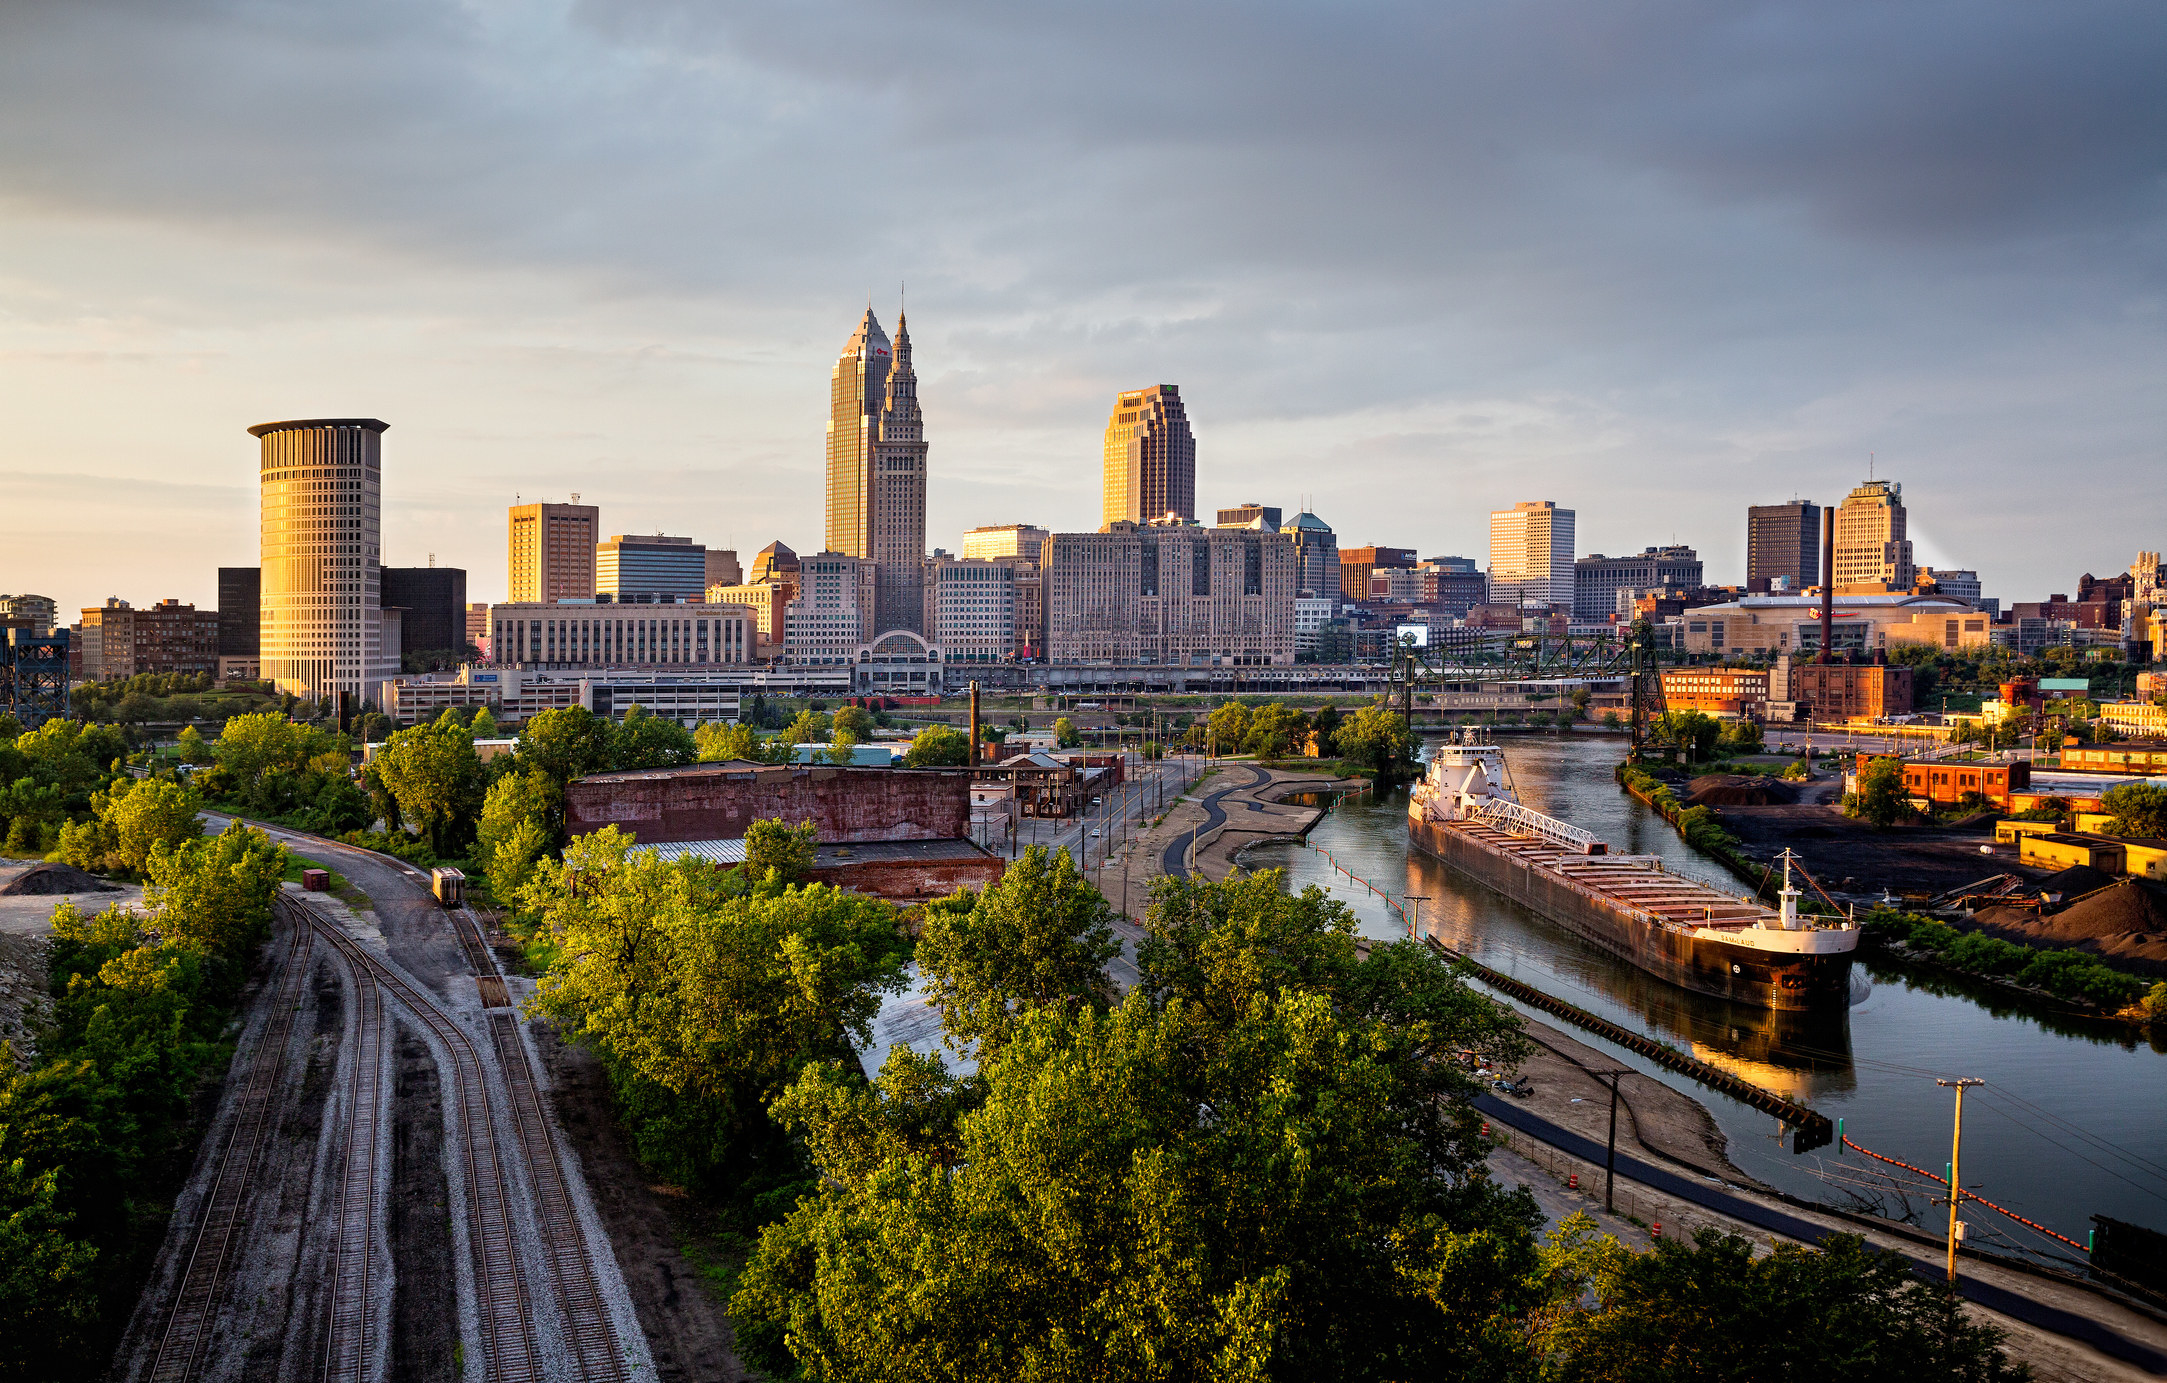 Downtown Cleveland at dusk with train tracks on the left and a freight train rolling down river on the right